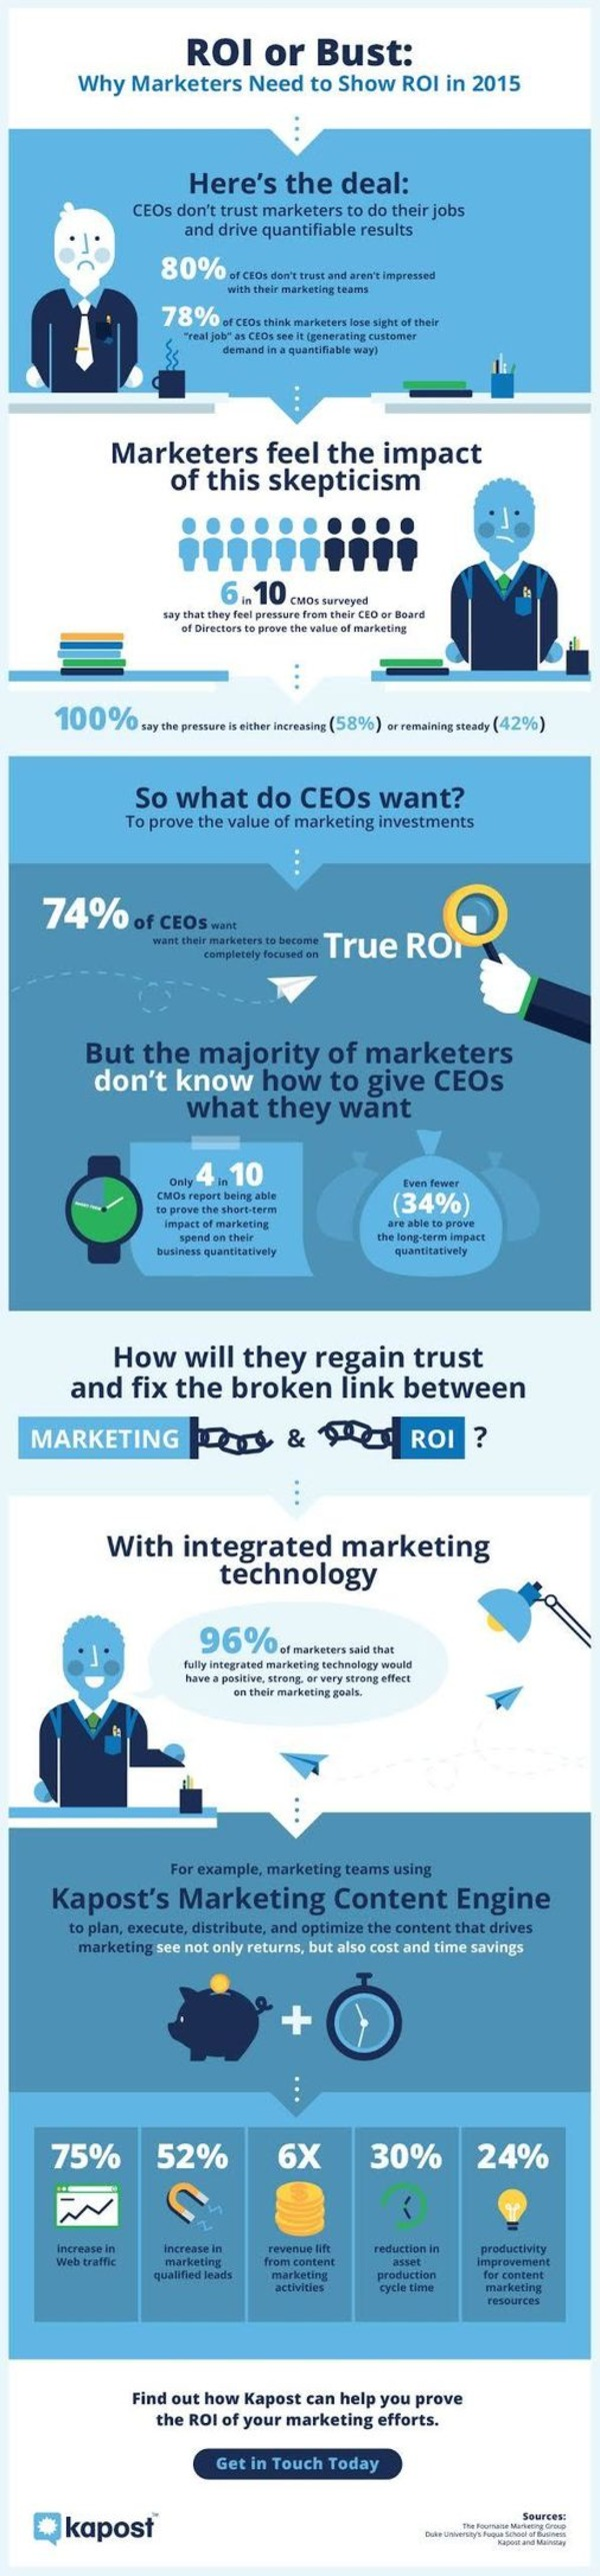 ROI or Bust: Why Marketers Need to Show ROI in 2015 [Infographic] - Kapost Content Marketing Blog | The Marketing Technology Alert | Scoop.it